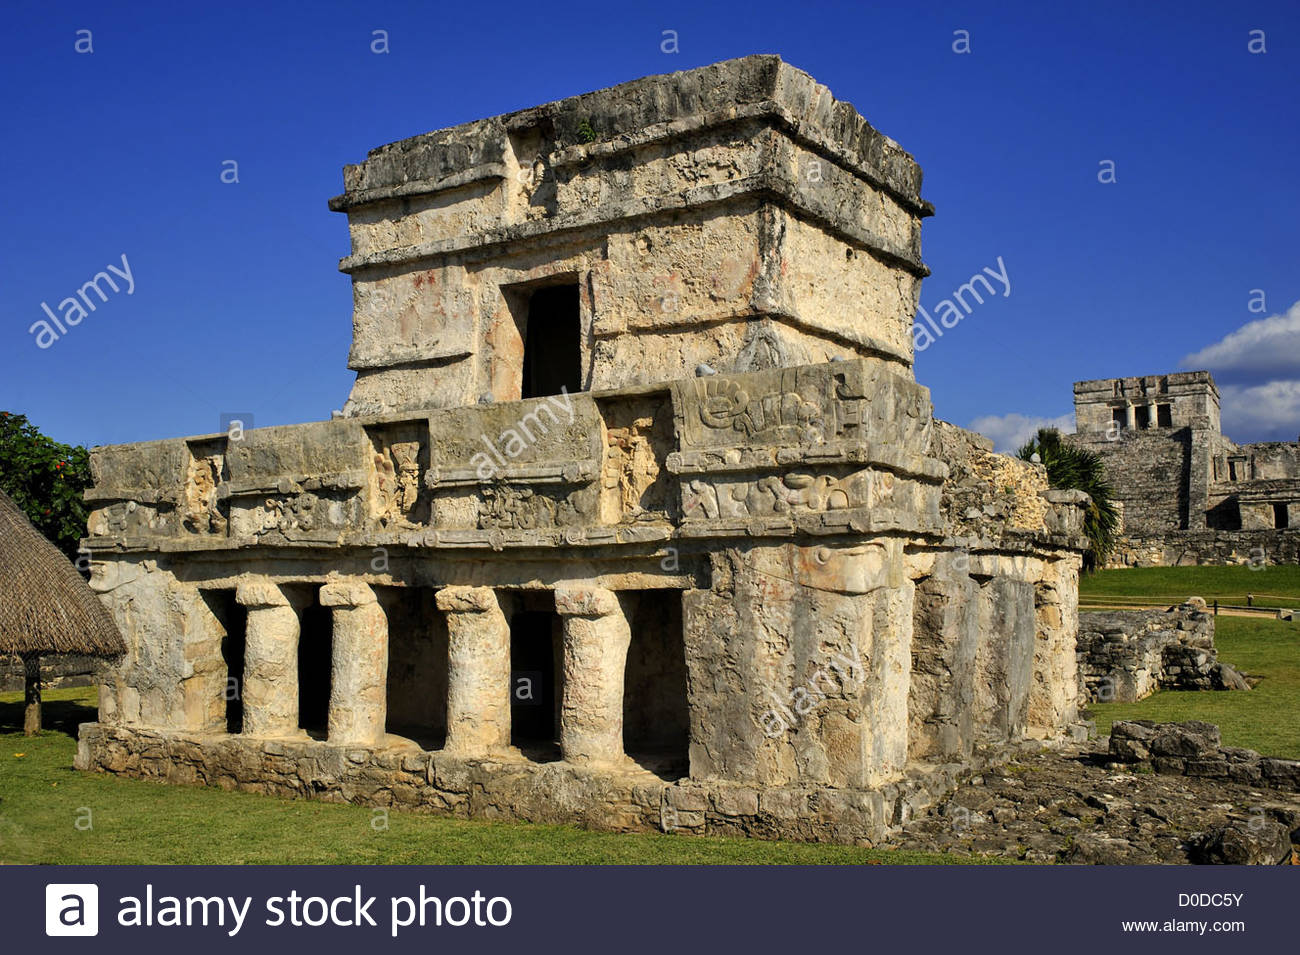 TEMPLE OF FRESCOES THE ARCHAEOLOGICAL SITE OF TULUM PRE-COLOMBIAN MAYAN CITY QUINTANA ROO MEXICO NORTH AMERICA - Stock Image